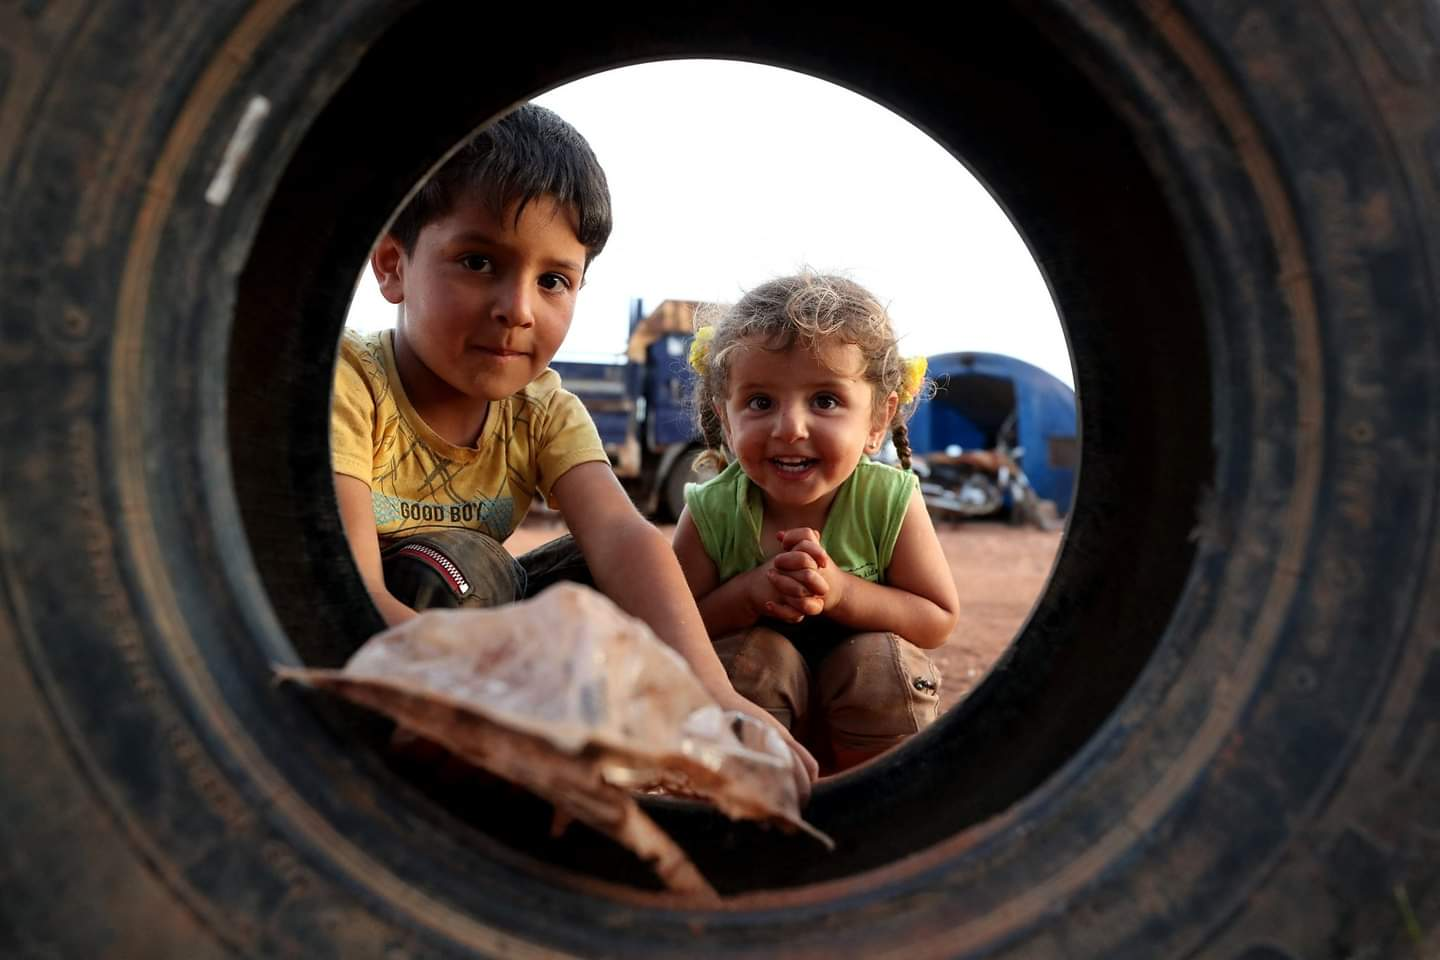 Syrian children playing in the IDPs camp in the city of Ma'arrat Misrin, in Idlib province, northwestern Syria— 8 May 2021 (AFP/ Omar Haj Qadour)